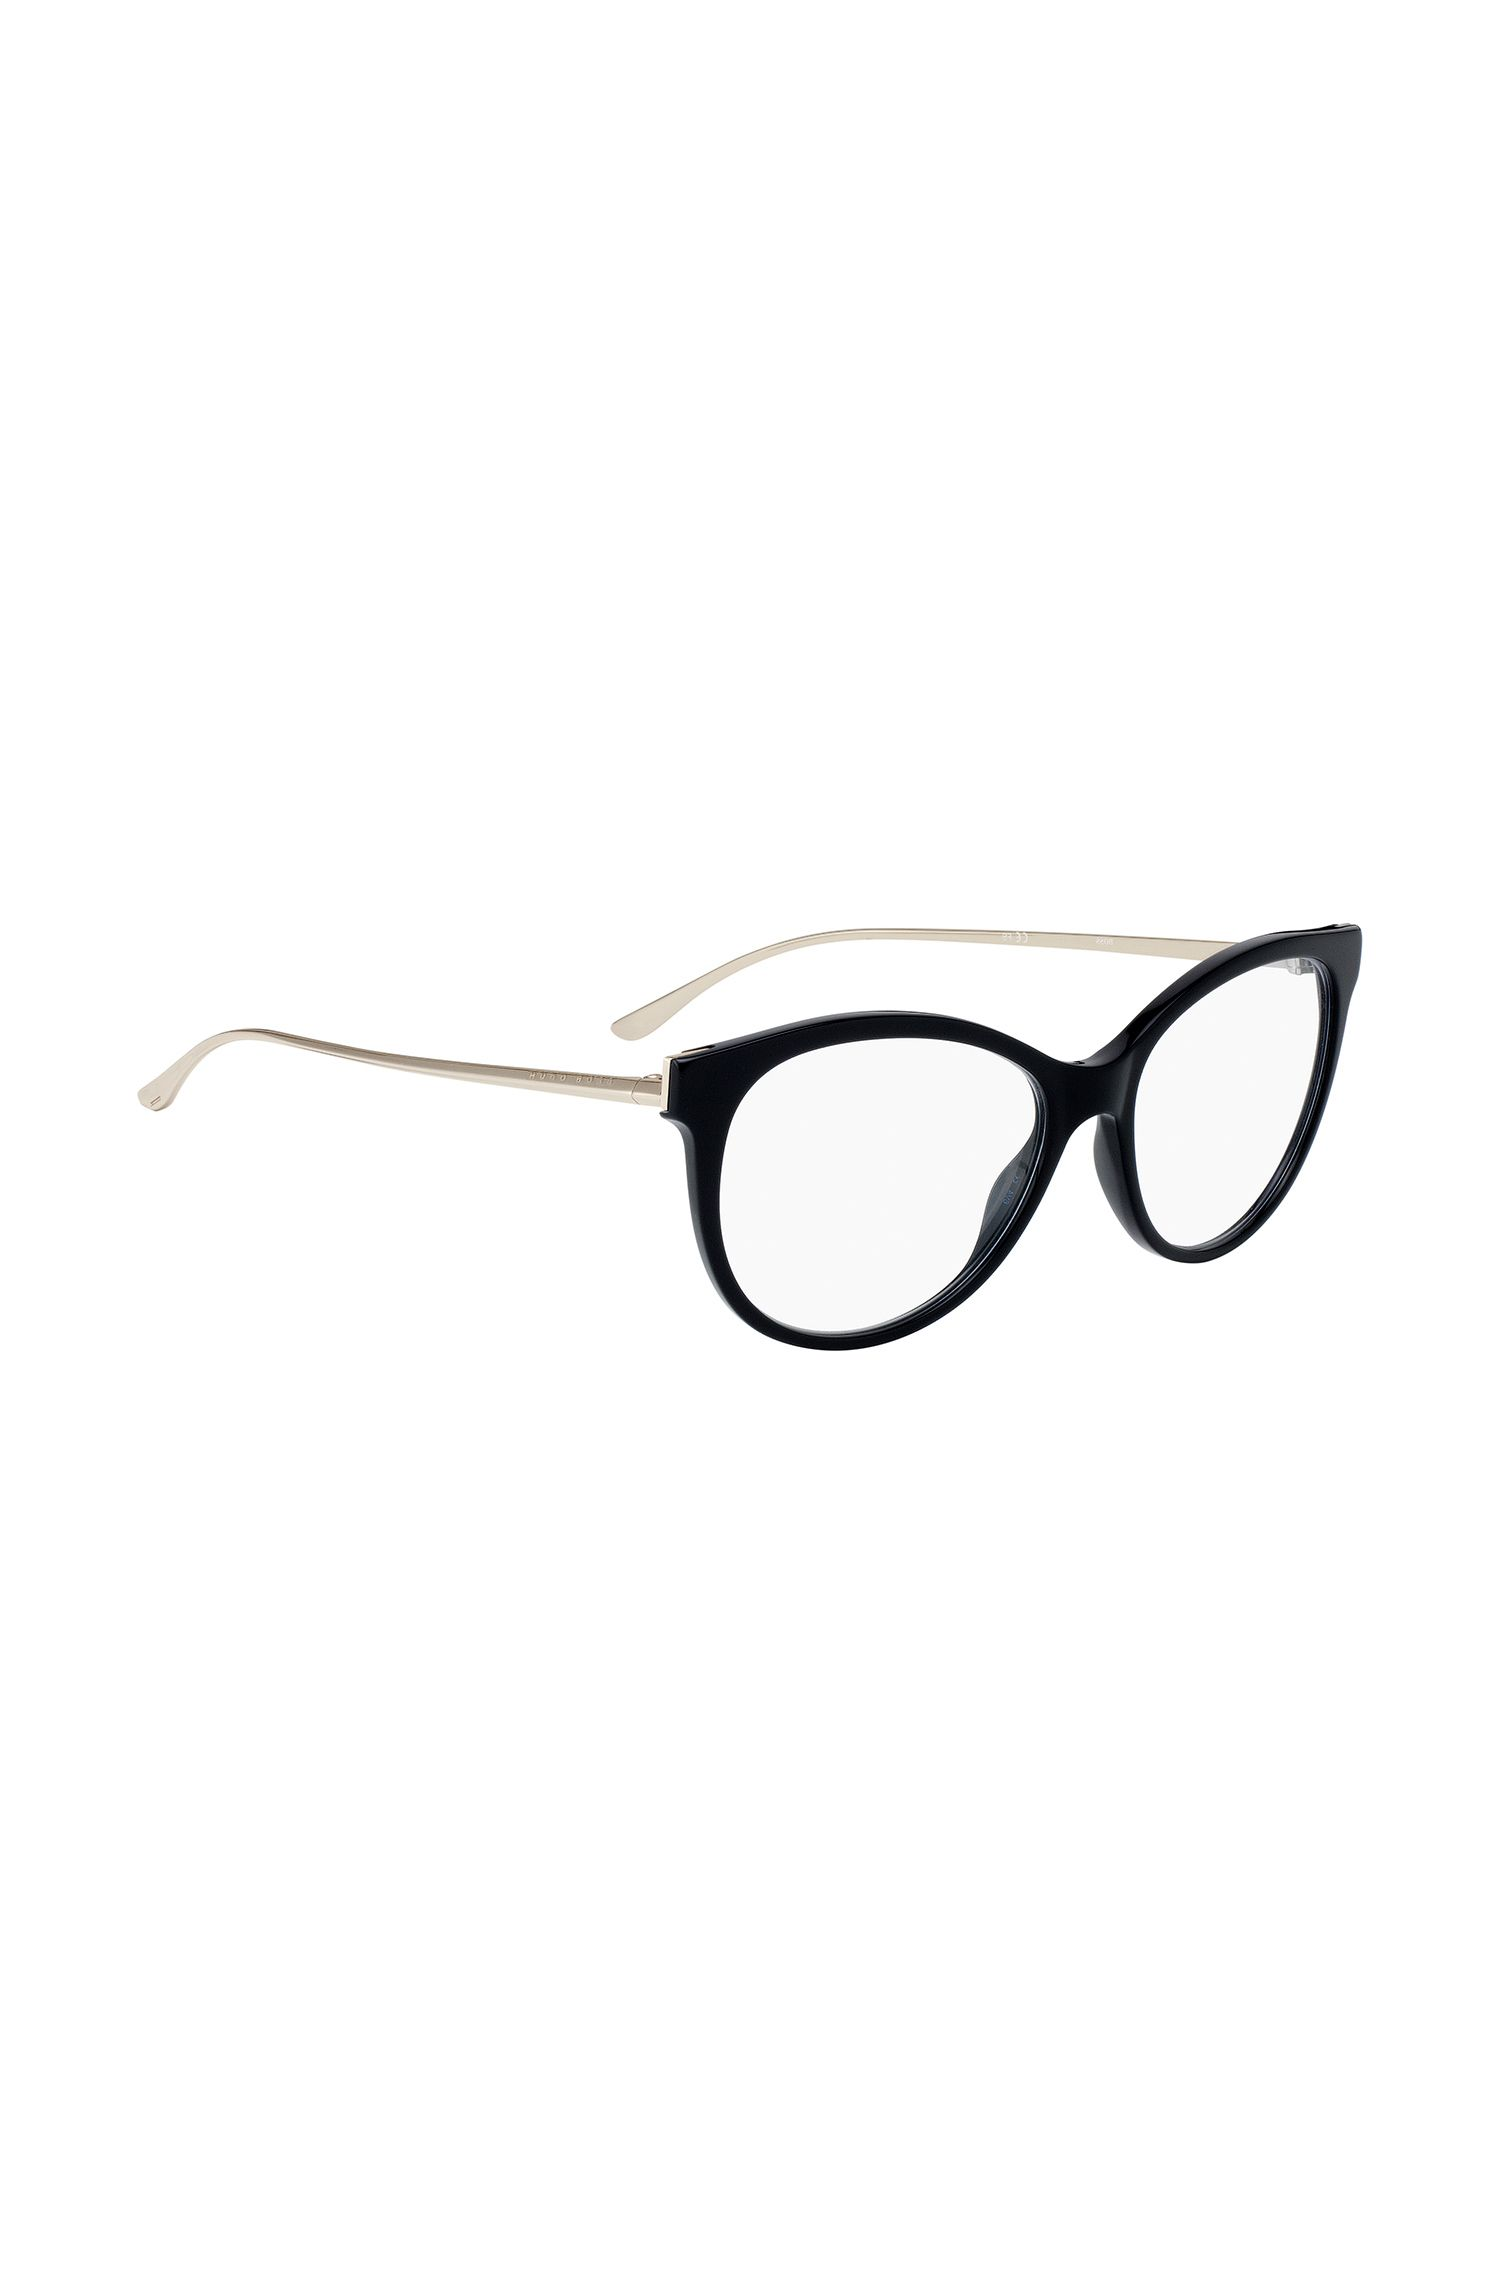 Cat-eye glasses with metal arms